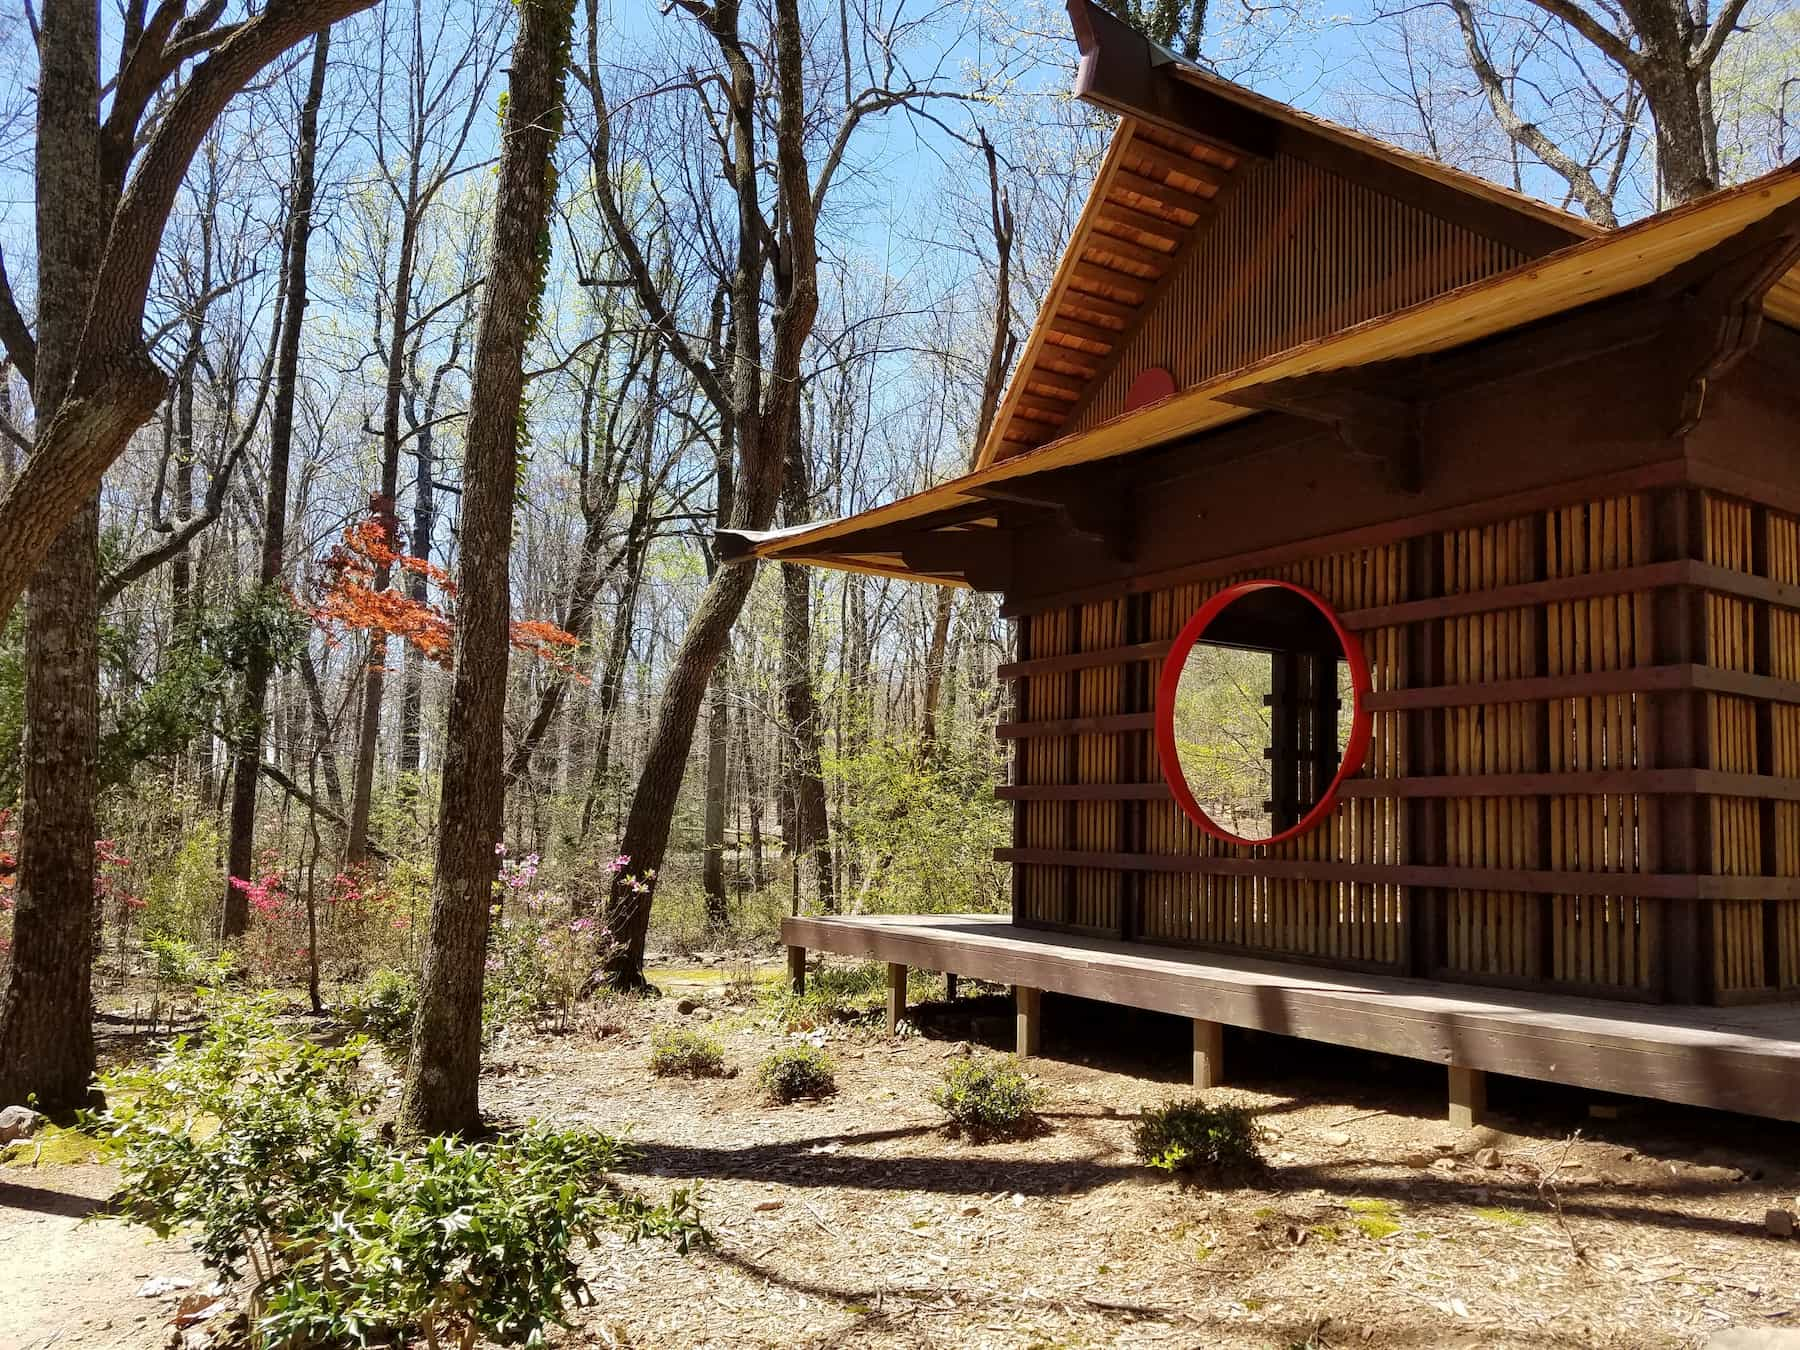 Japanese tea house in the Japanese Garden at Monte Sano State Park Campground.